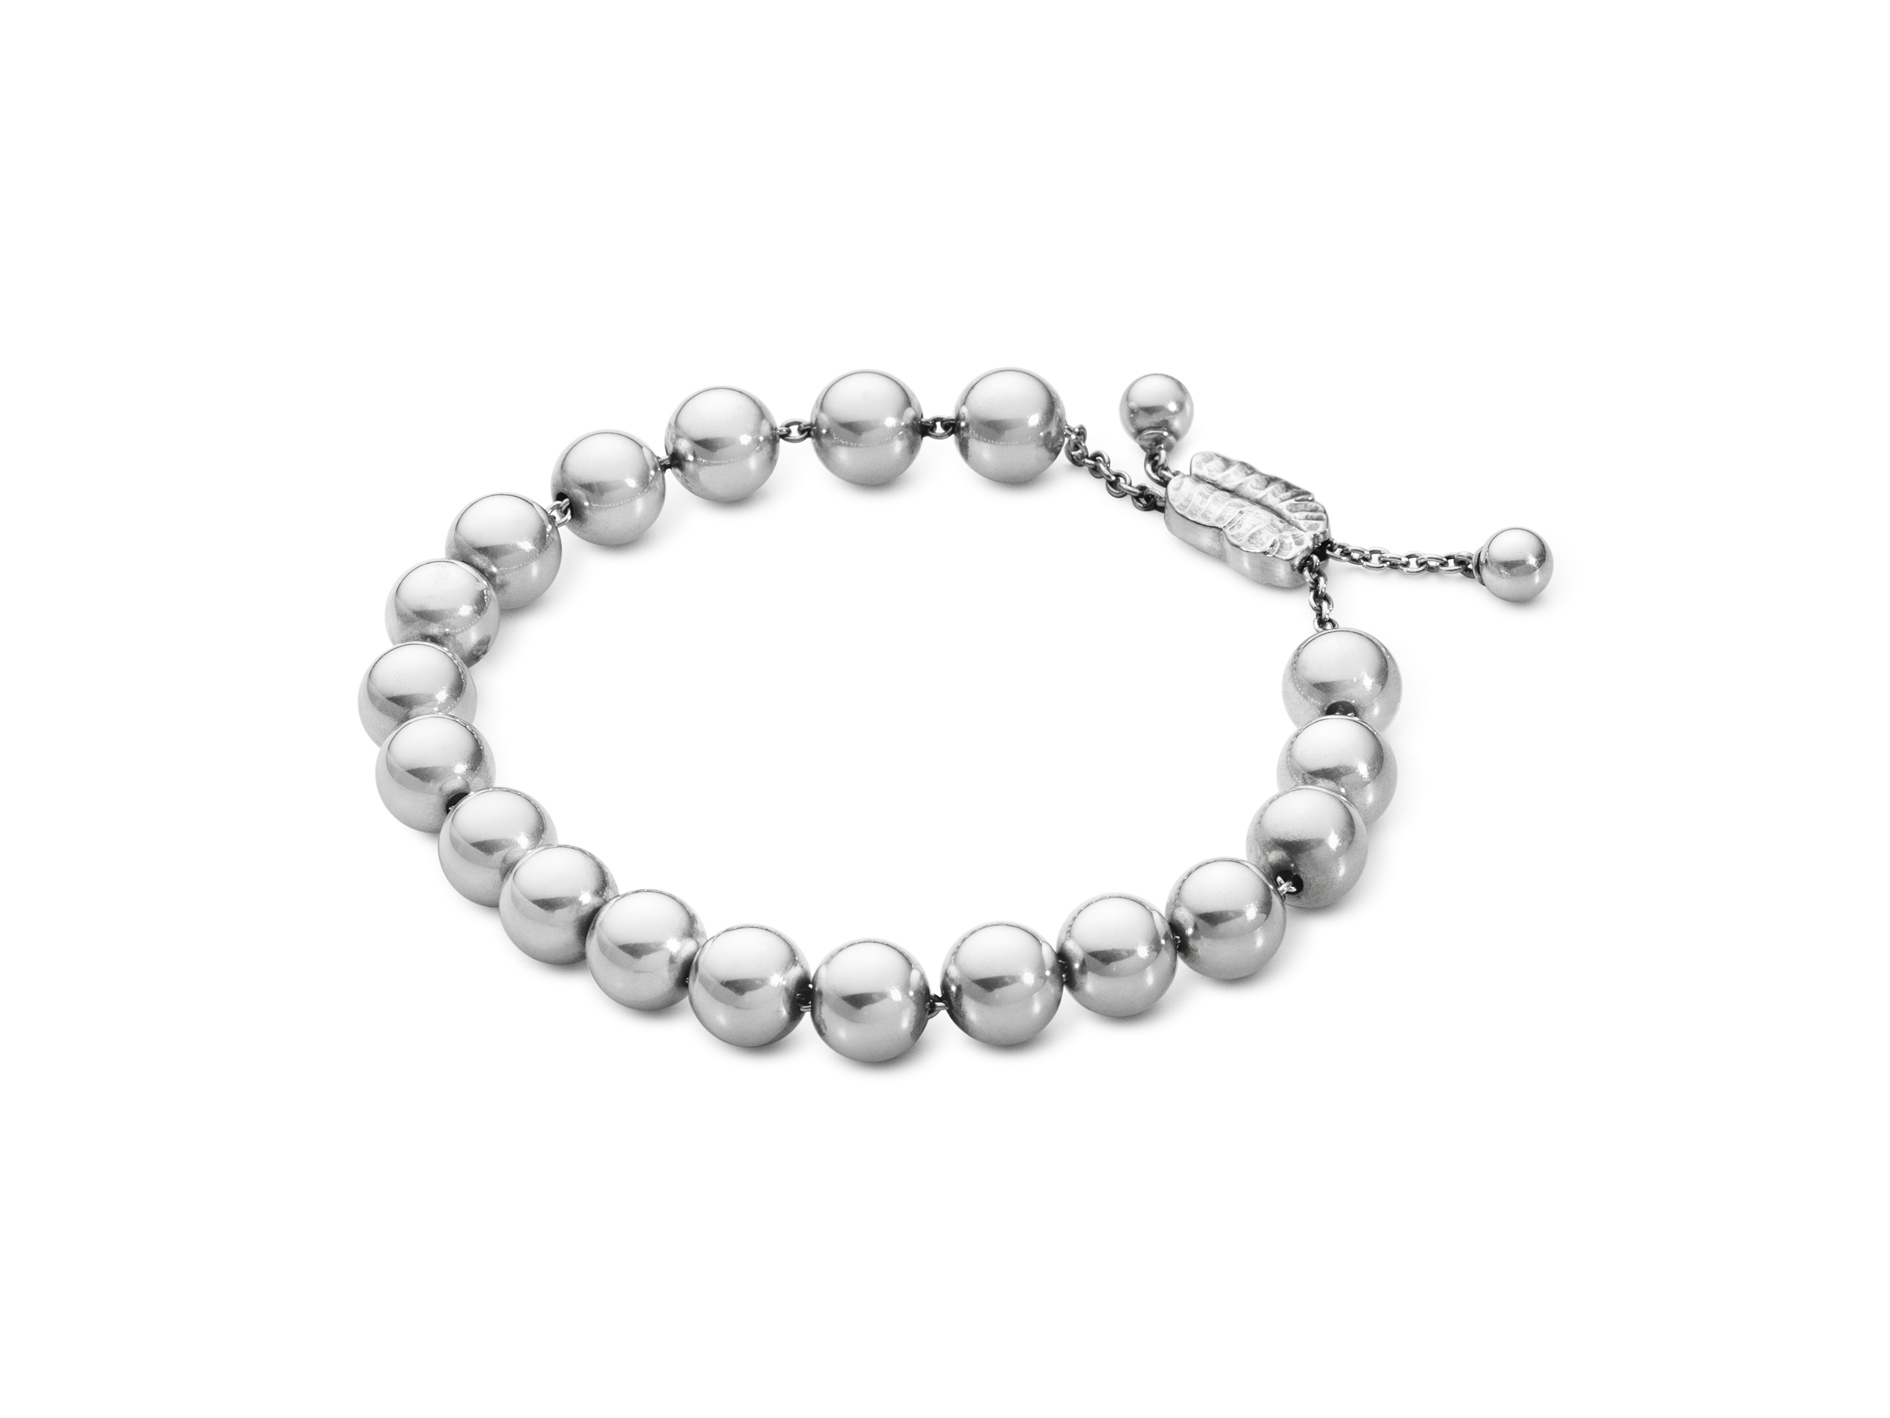 Georg Jensen MOONLIGHT GRAPES armbånd - 3531318